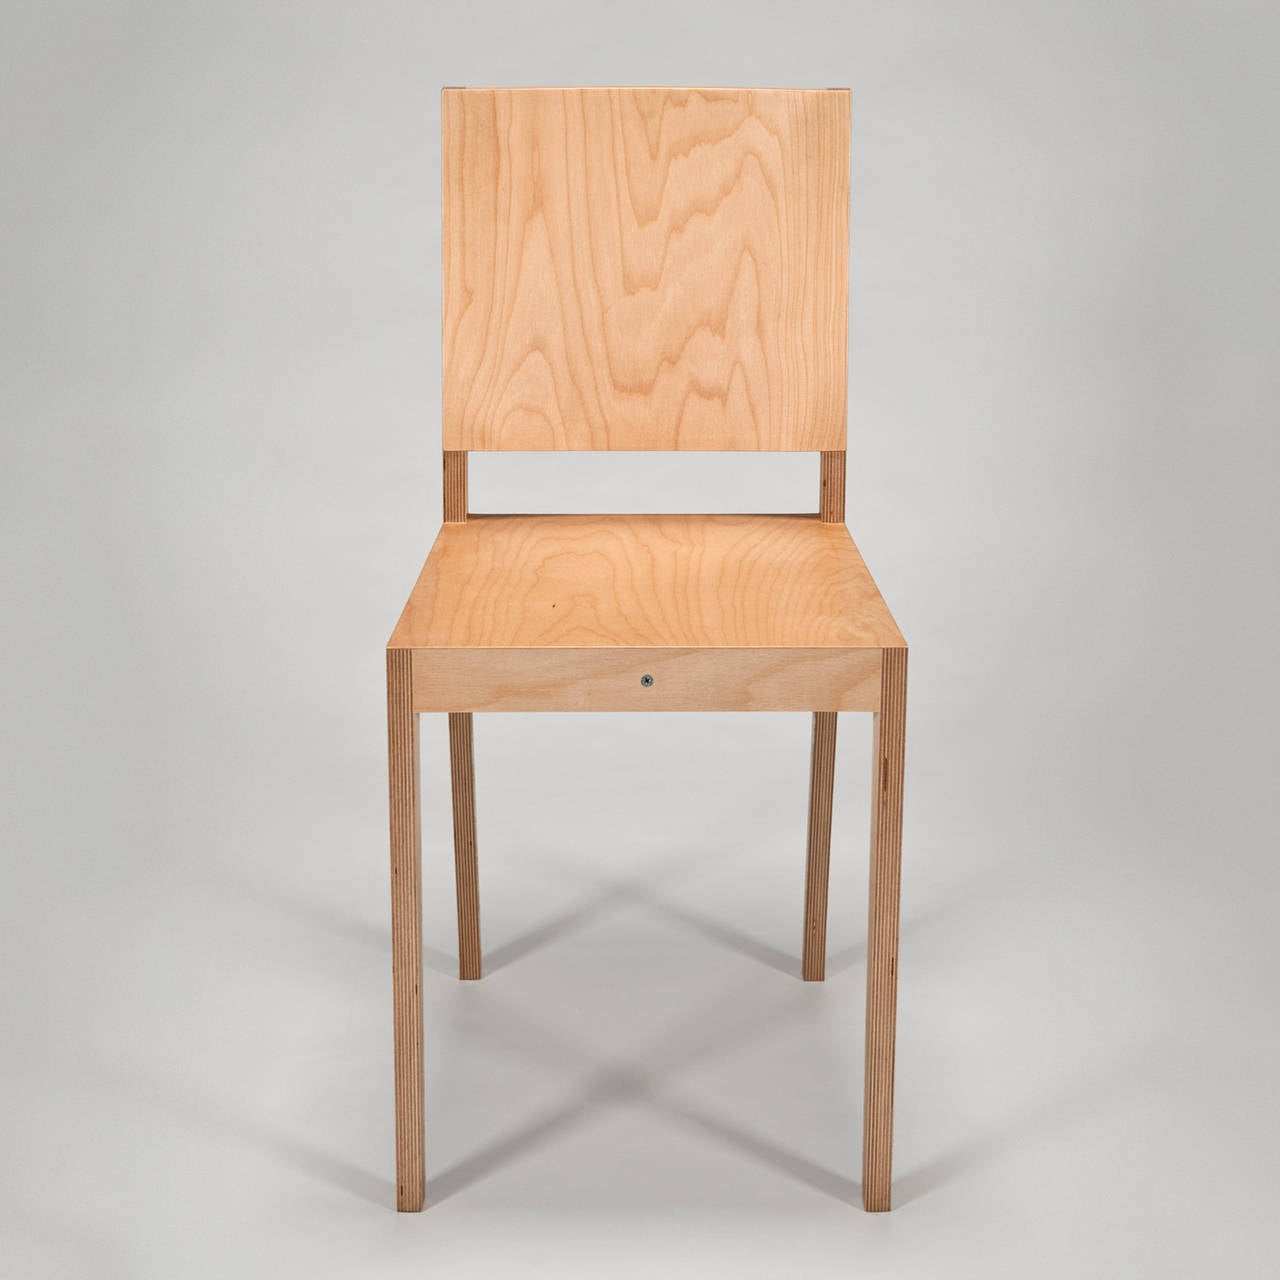 plychair with closed back by jasper morrison for vitra